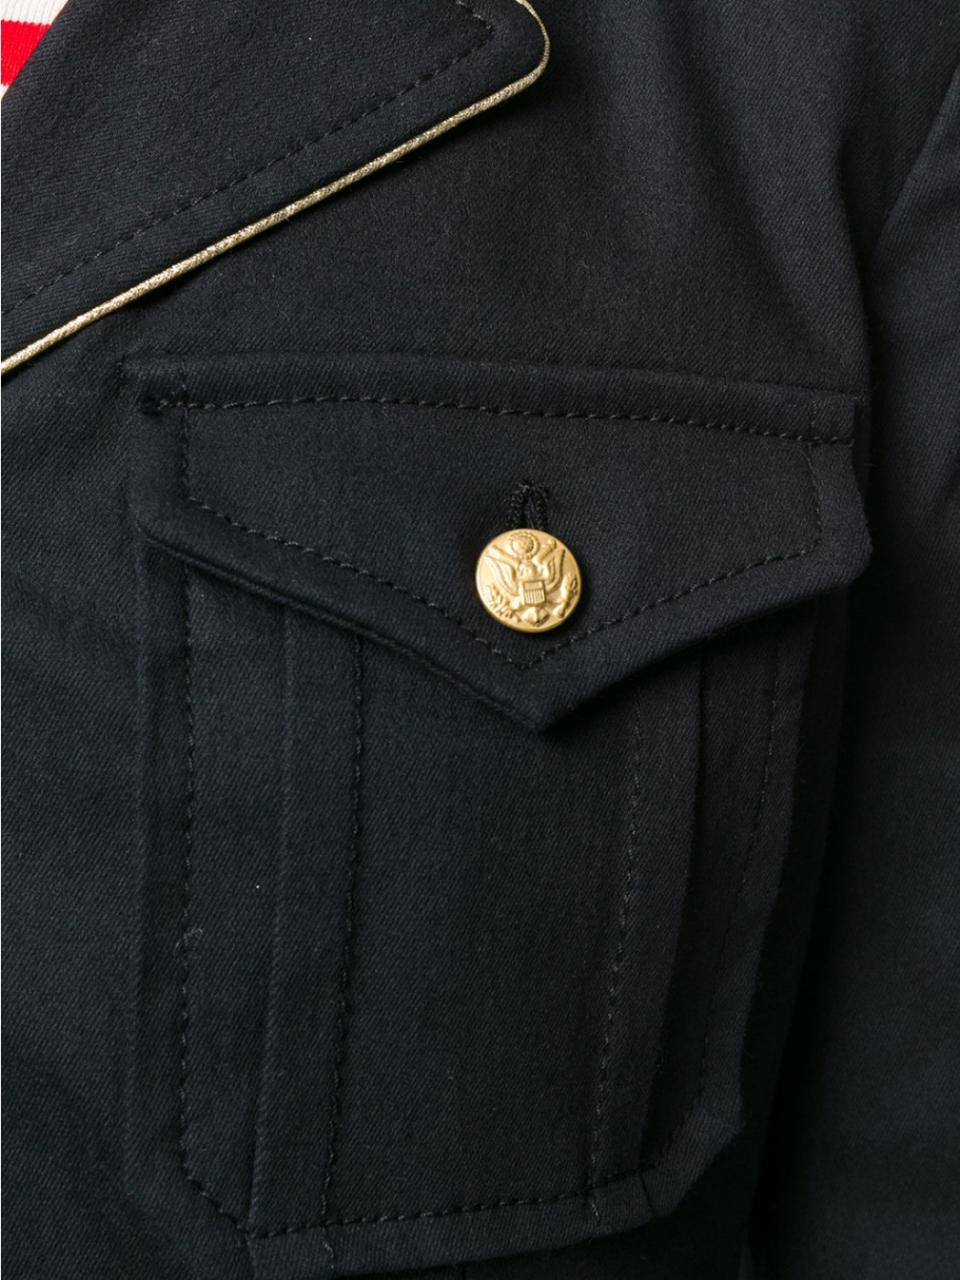 Military Style Navy Blue Jacket - The Bobby Boga